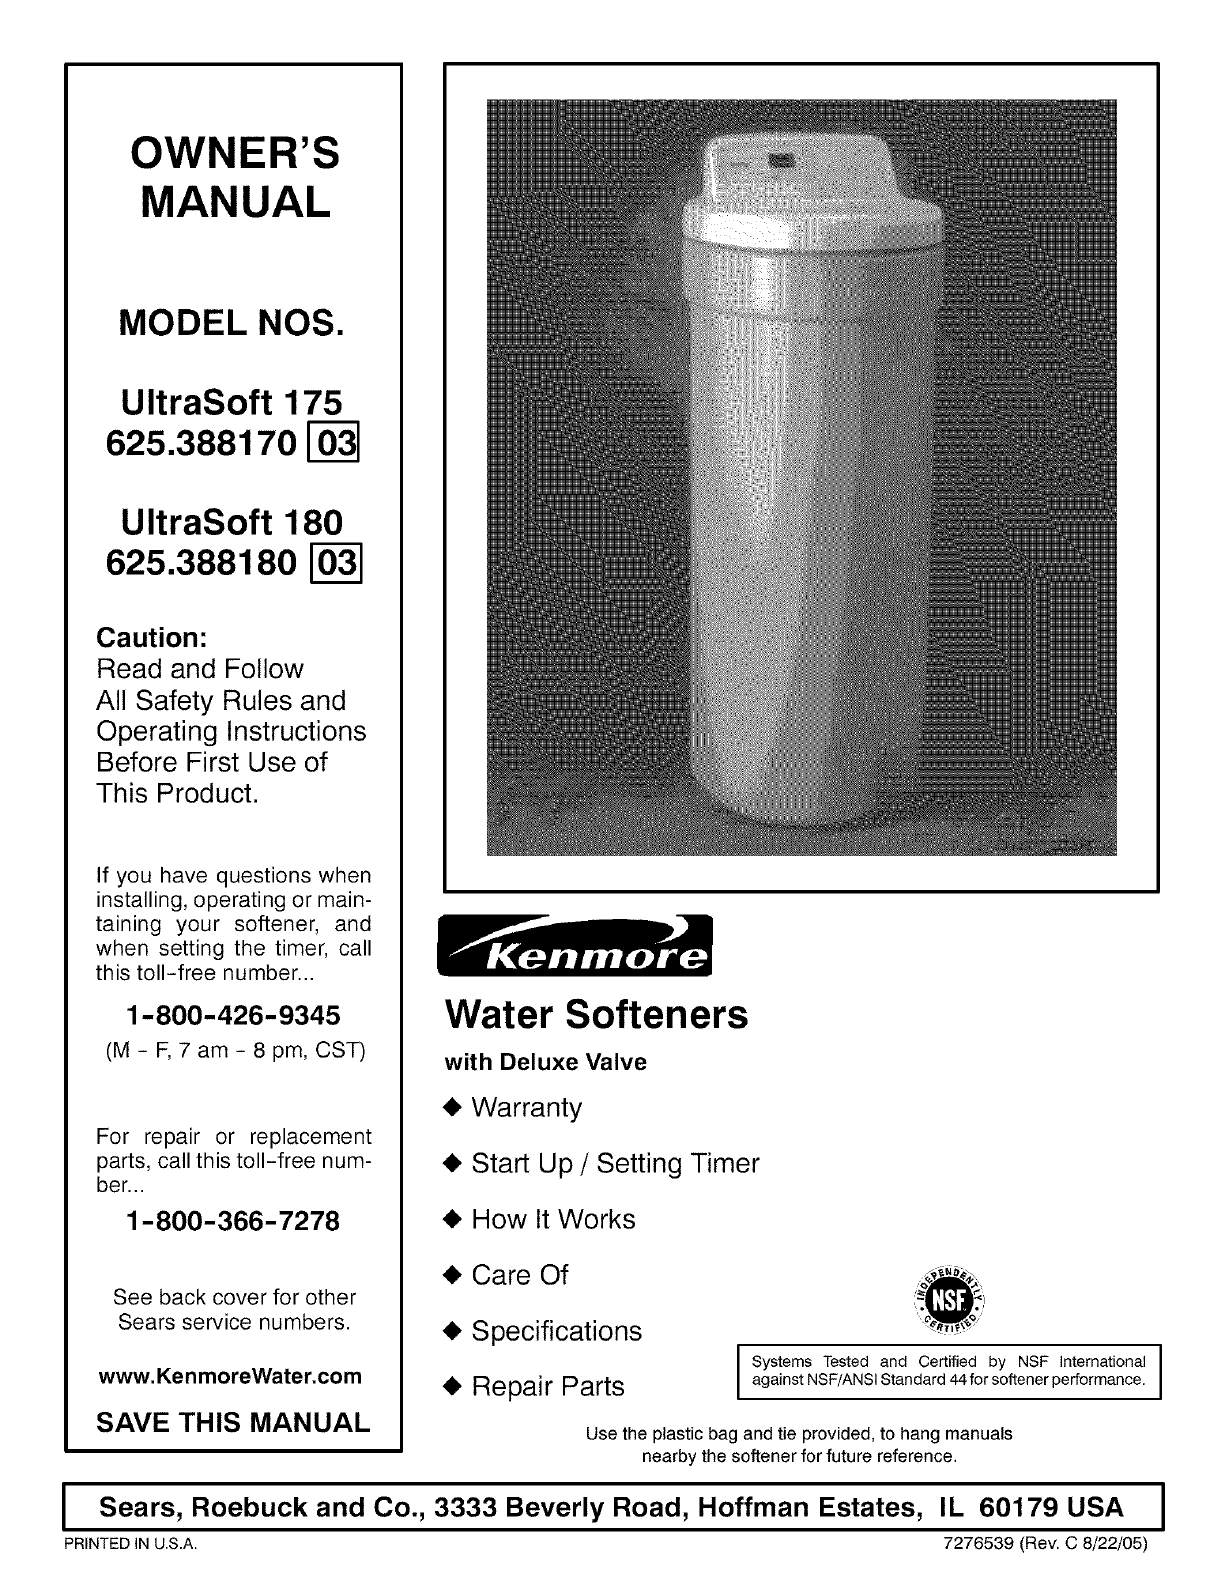 manual water softener instructions